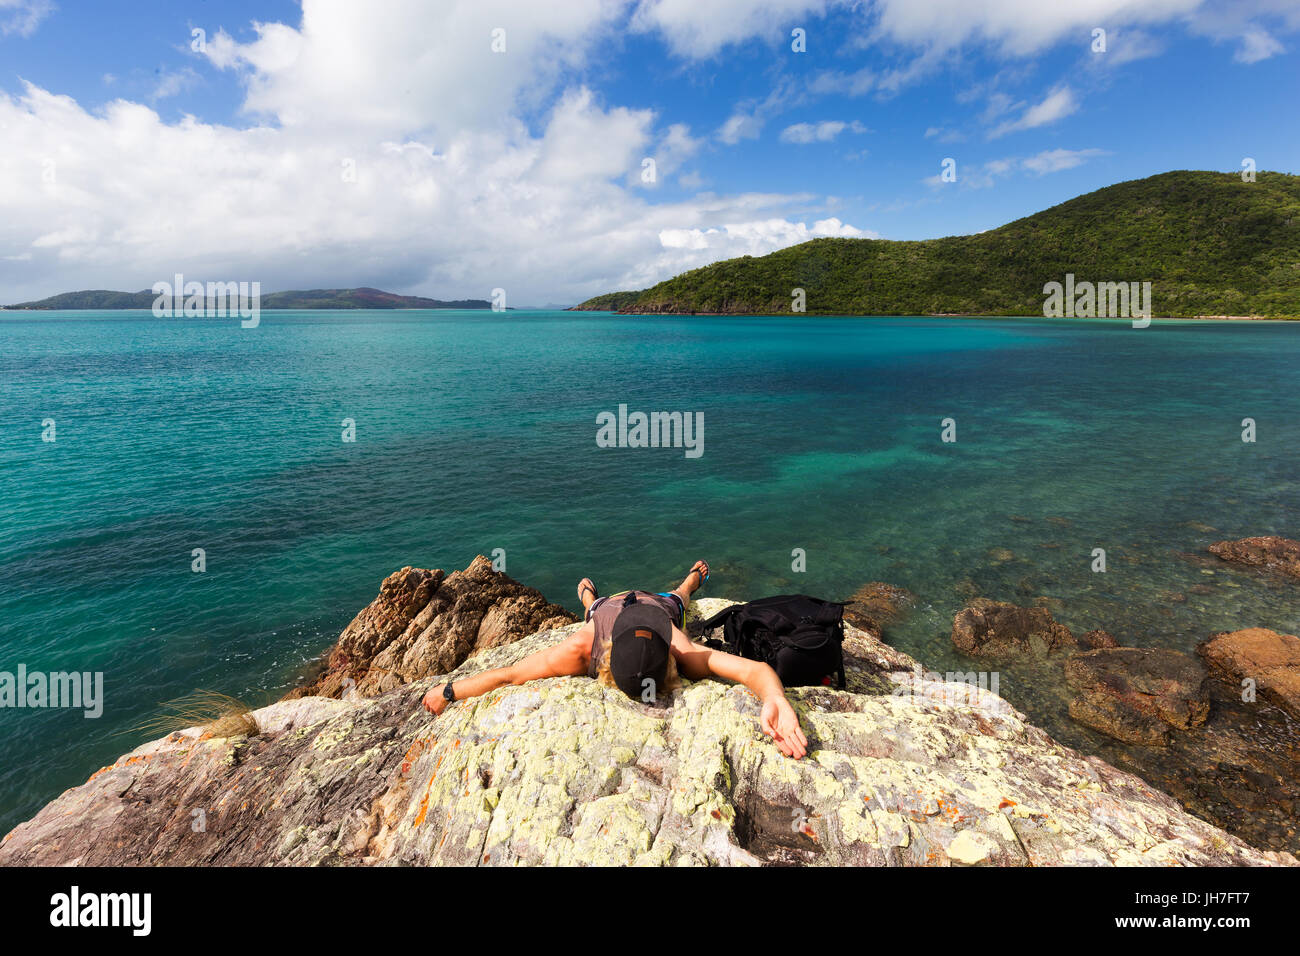 An exhausted traveler rests on a boulder at a beautiful isolated tropical beach in northern Queensland, Australia. - Stock Image